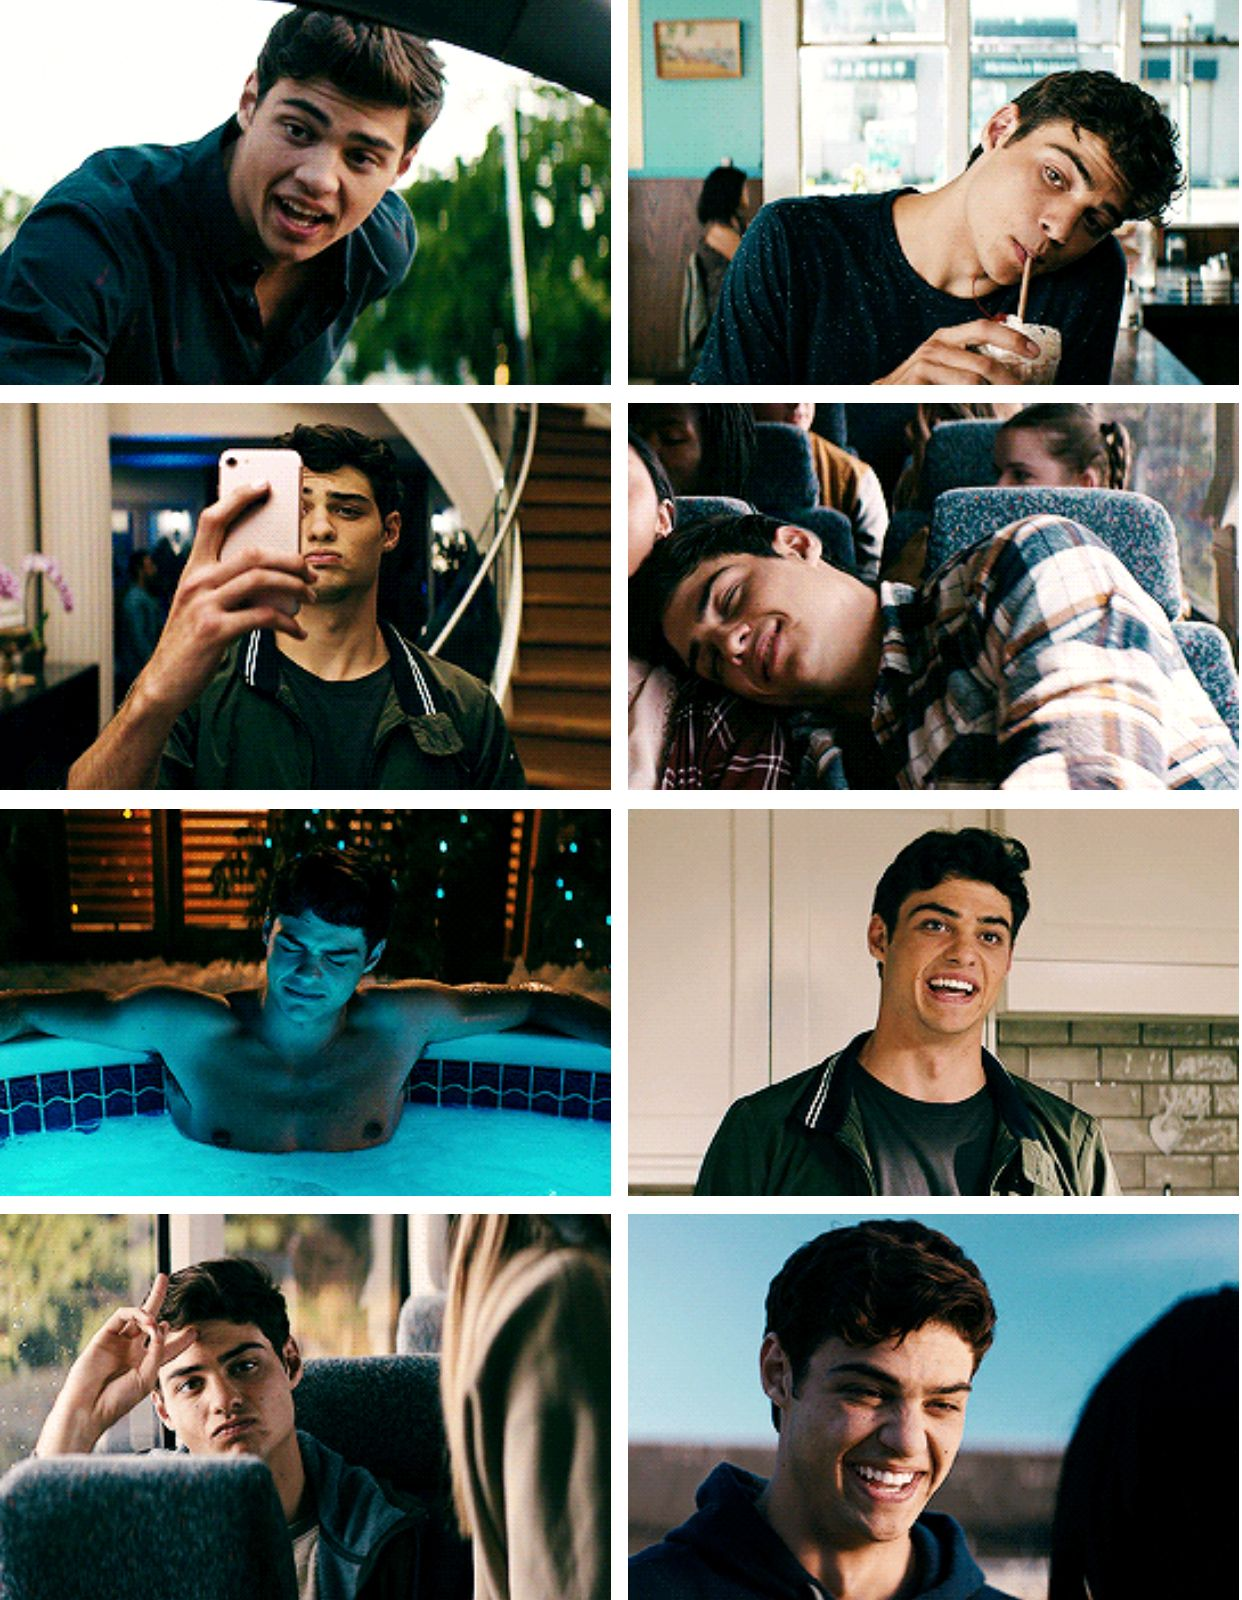 Noah Centineo As Peter Kavinsky In To All The Boys I Ve Loved